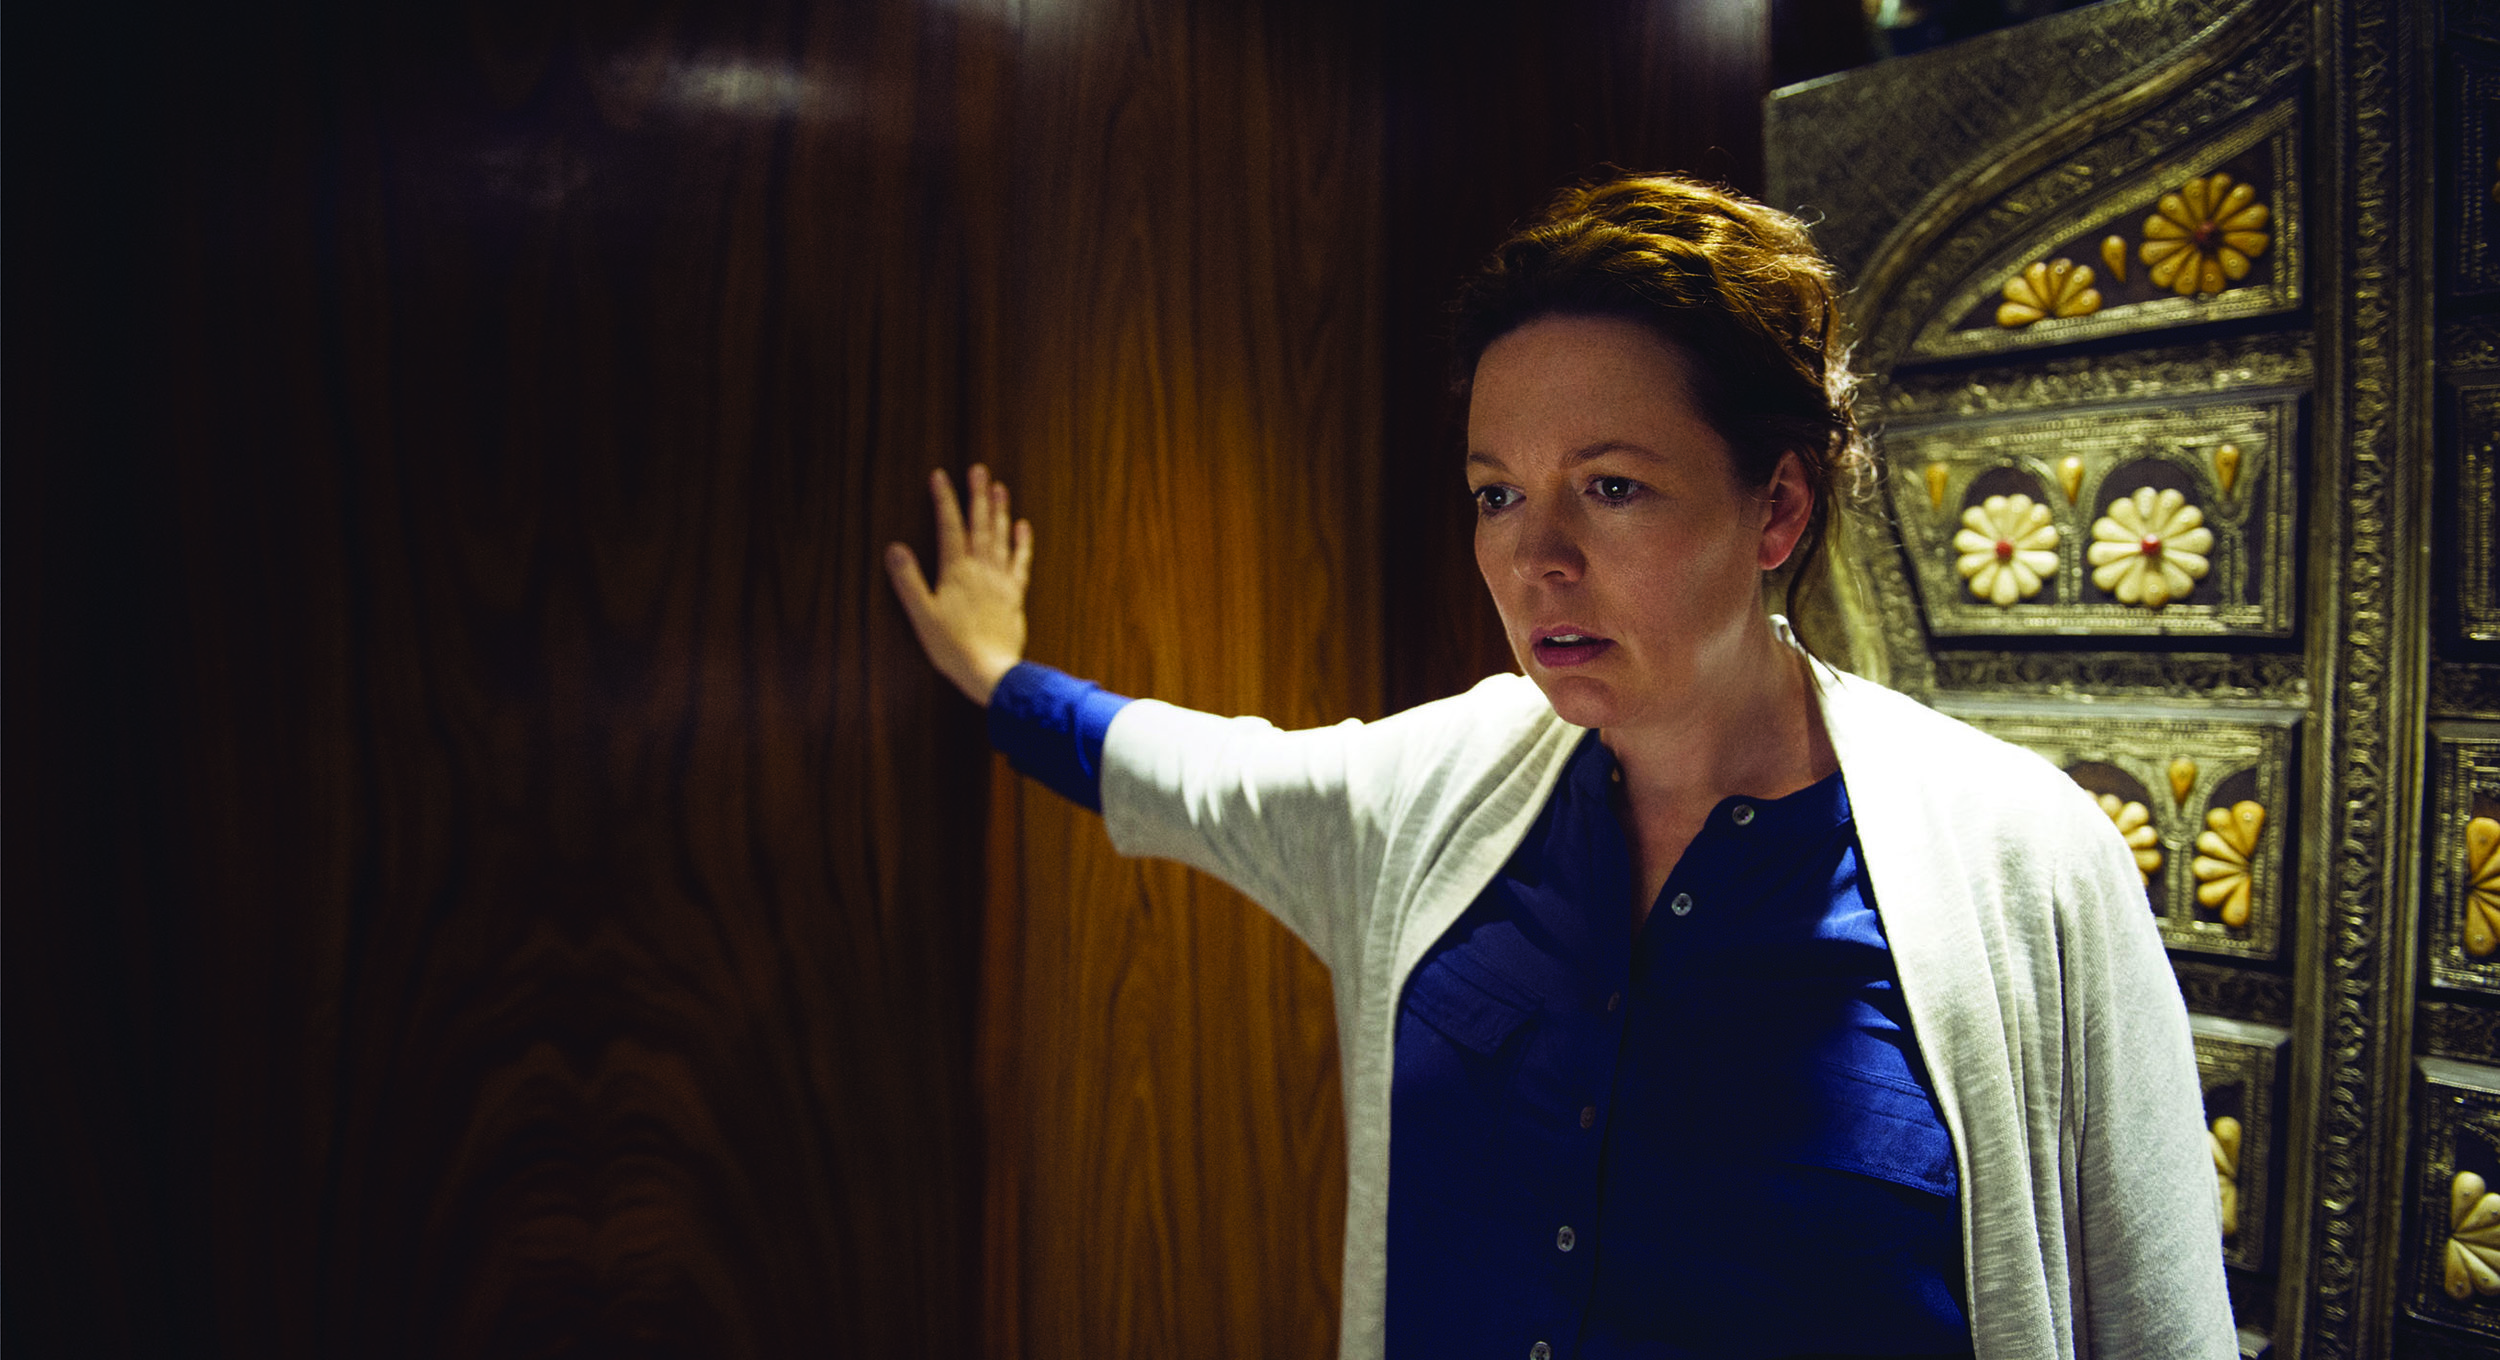 Olivia Colman as British Special Intelligence Service agent Angela Burr.